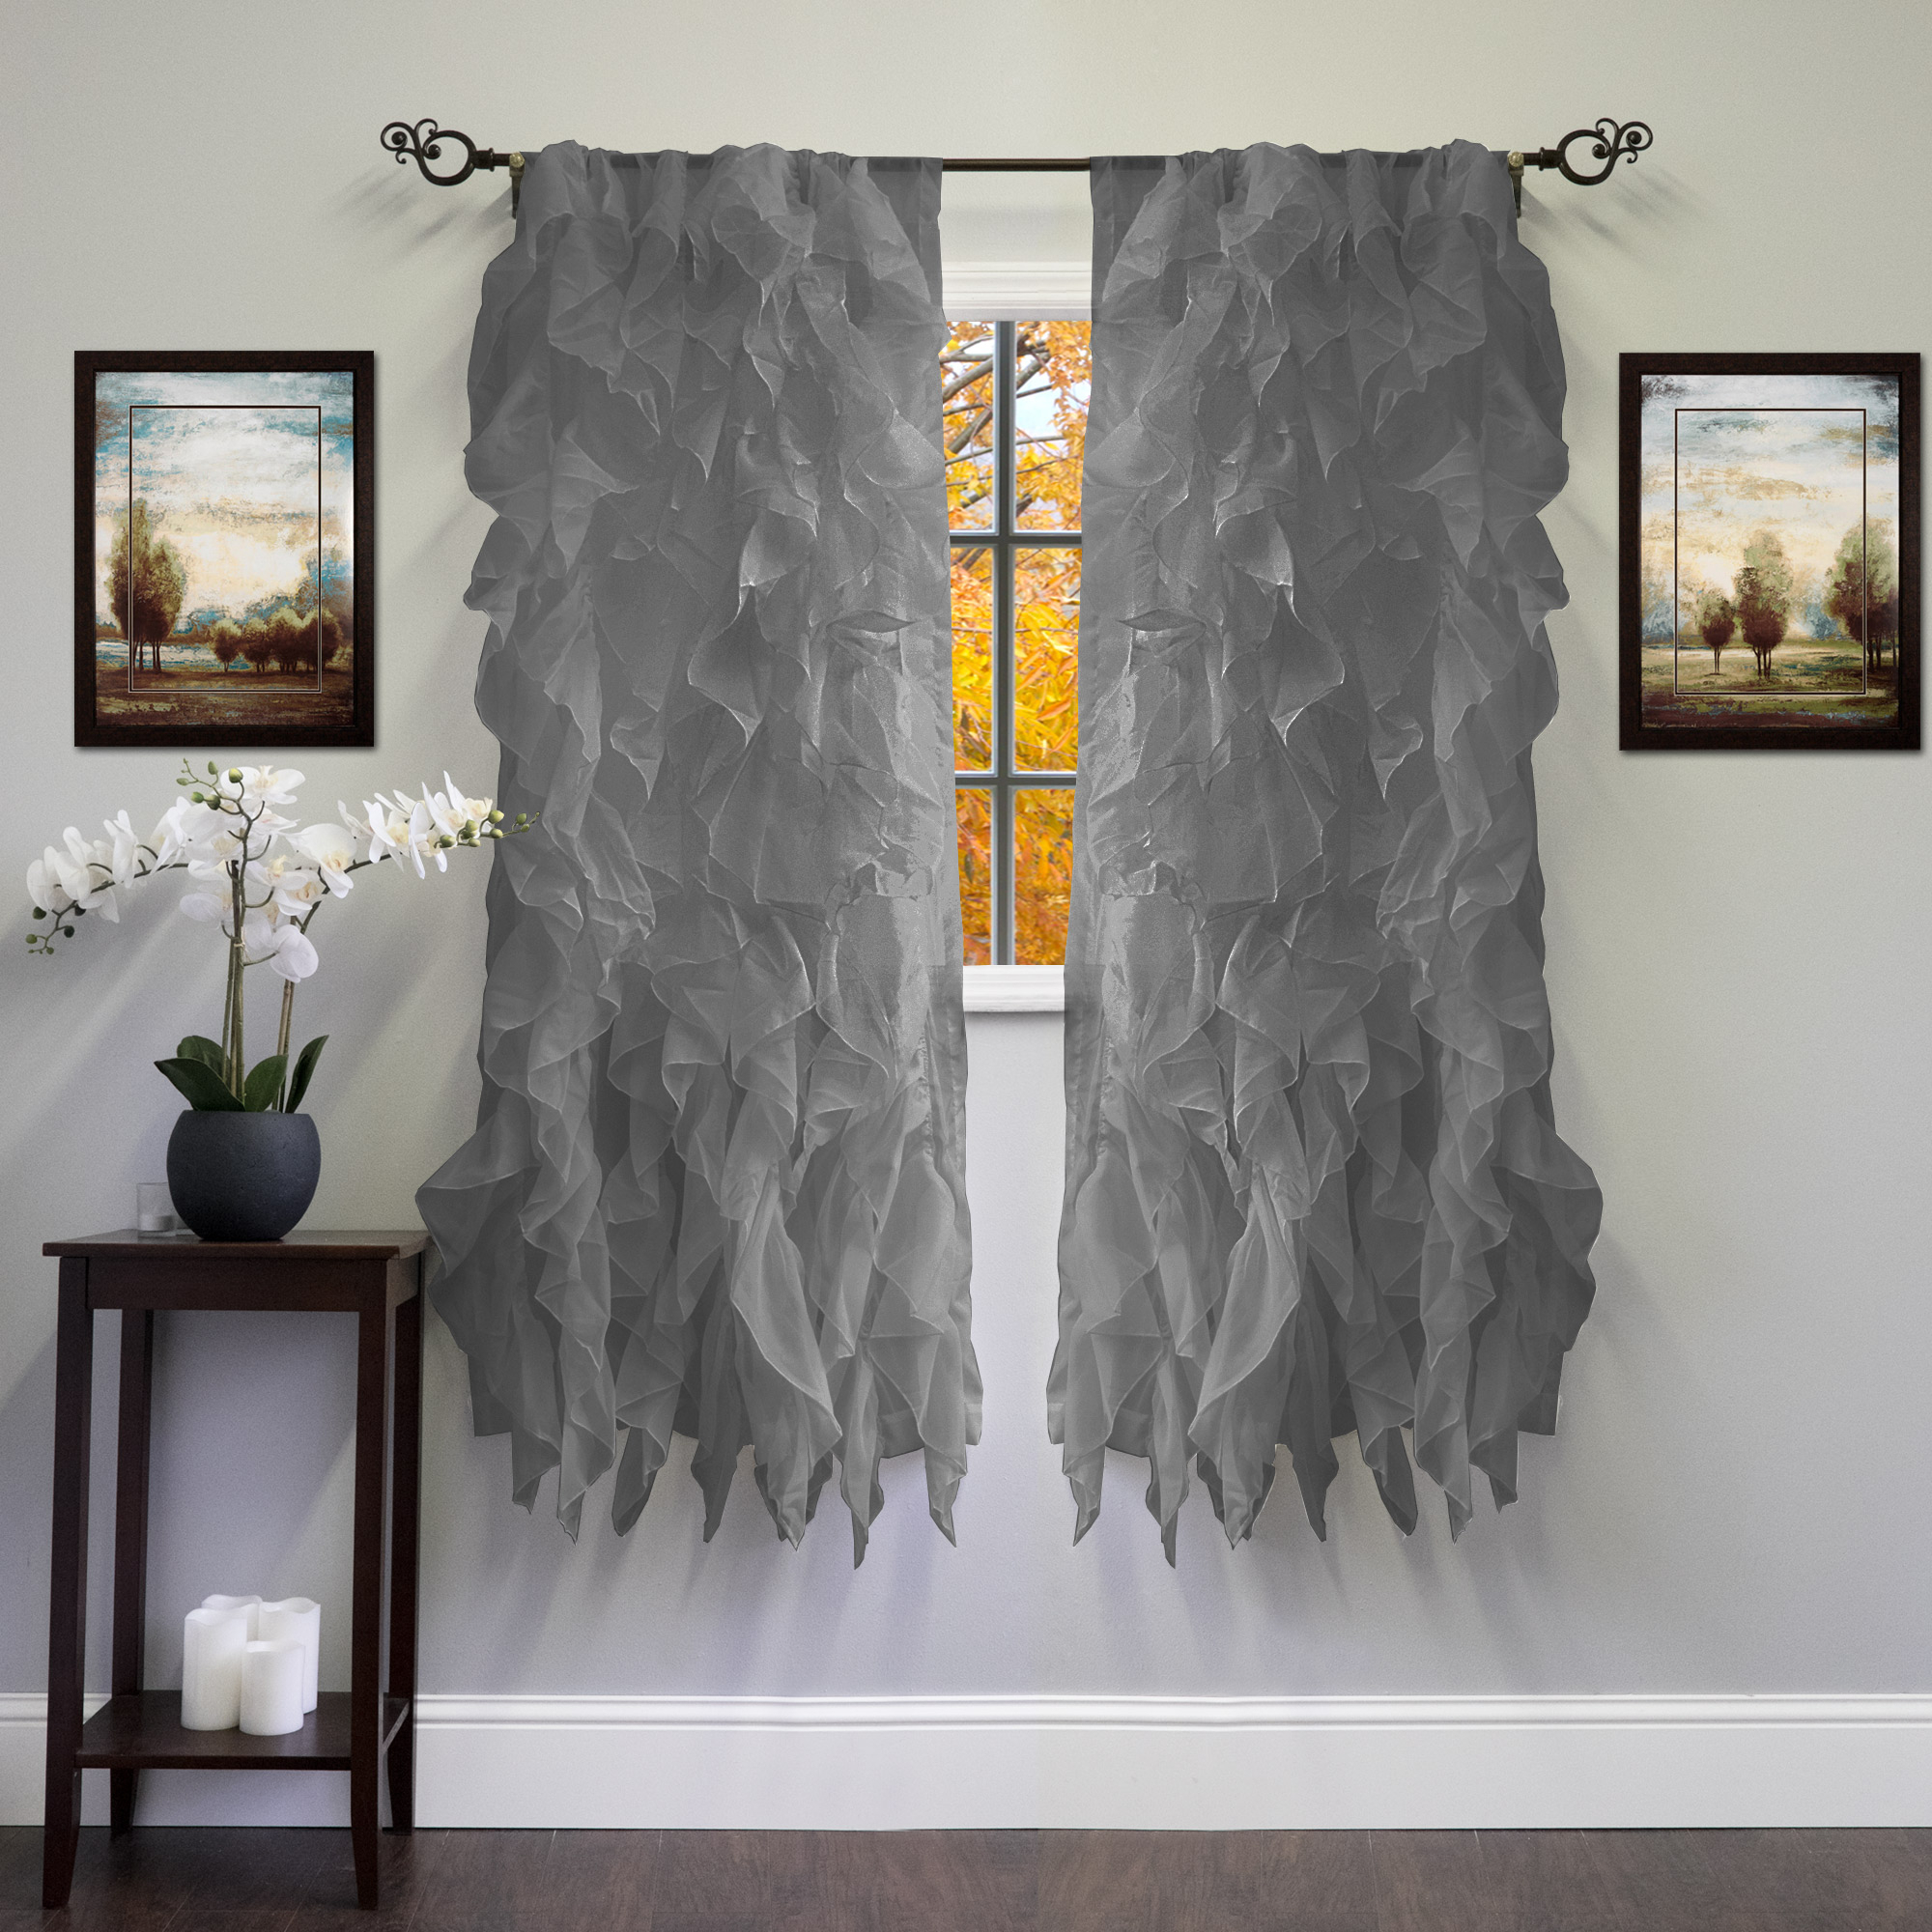 """Chic Sheer Voile Vertical Ruffled Tier Window Curtain Panel 50"""" X 63"""" – Walmart Within Chic Sheer Voile Vertical Ruffled Window Curtain Tiers (View 4 of 20)"""